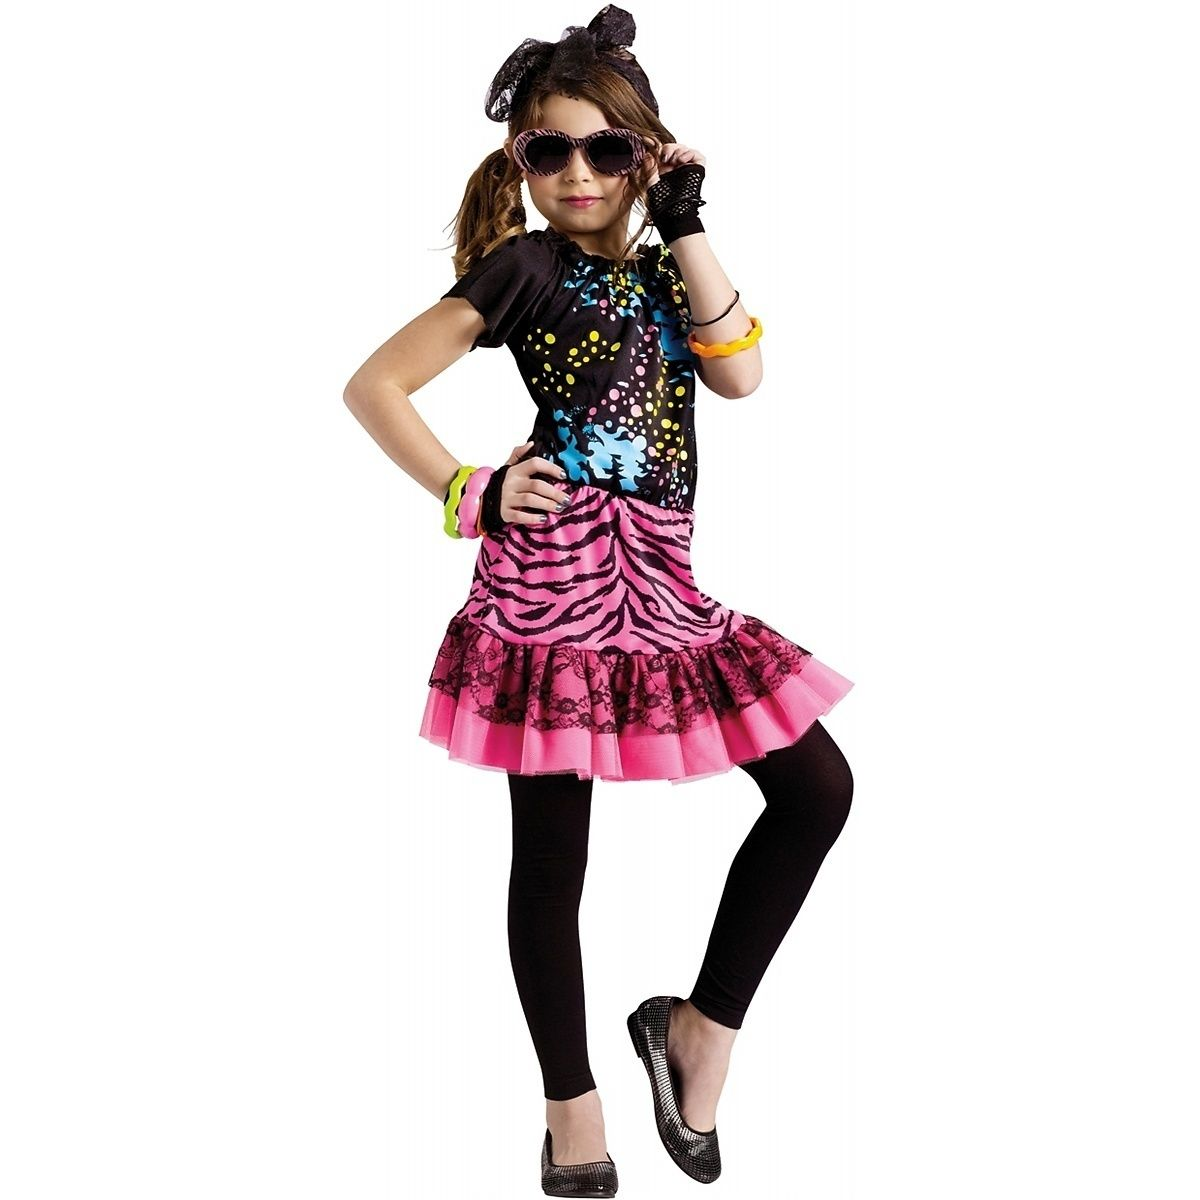 80's Pop Party Costume Kids Rock Star Singer Halloween